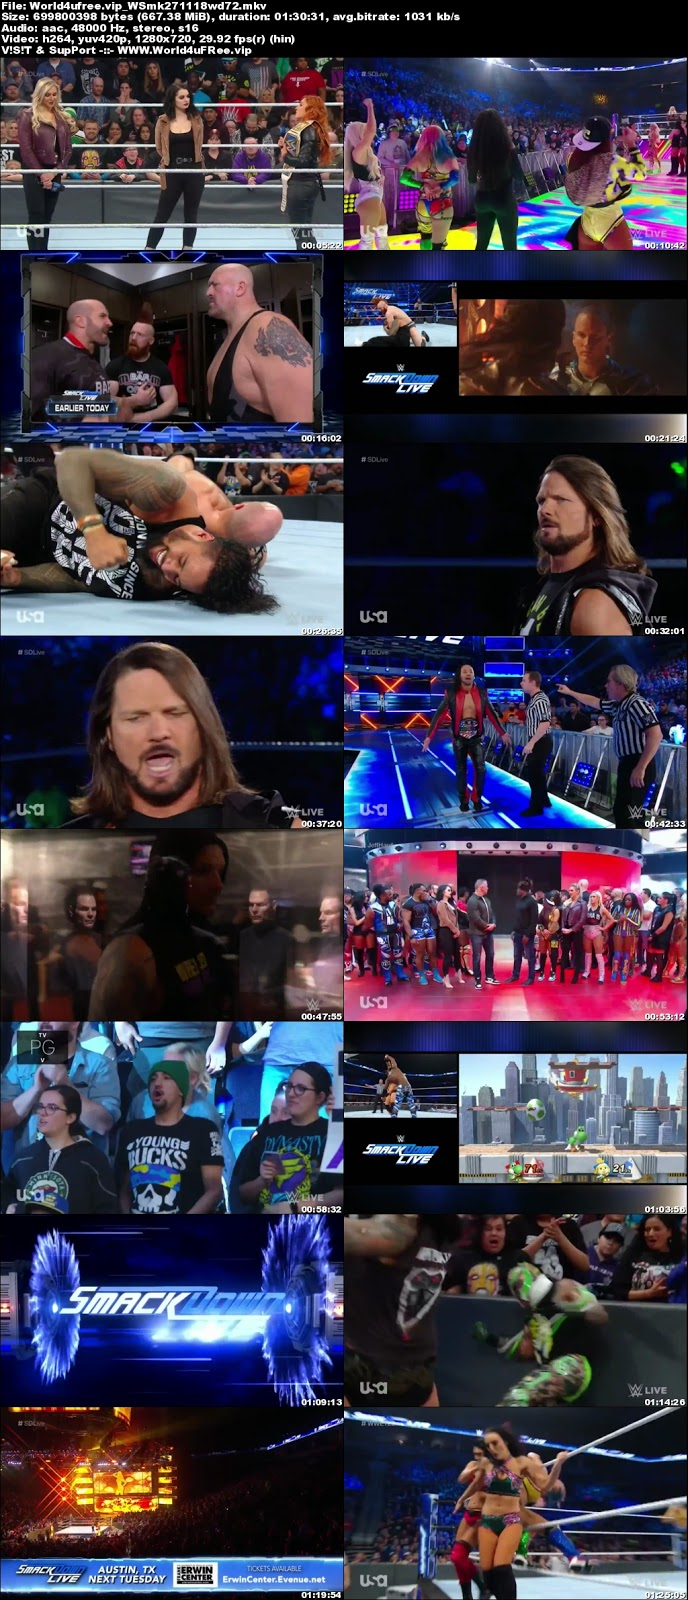 WWE Smackdown Live 27 NOVEMBER 2018 720p HDTV 600MB x264tv show wwe WWE Smackdown Live 23 OCTOBER 2018 HDTV 480p 650MB x264 compressed small size free download or watch online at world4ufree.vip